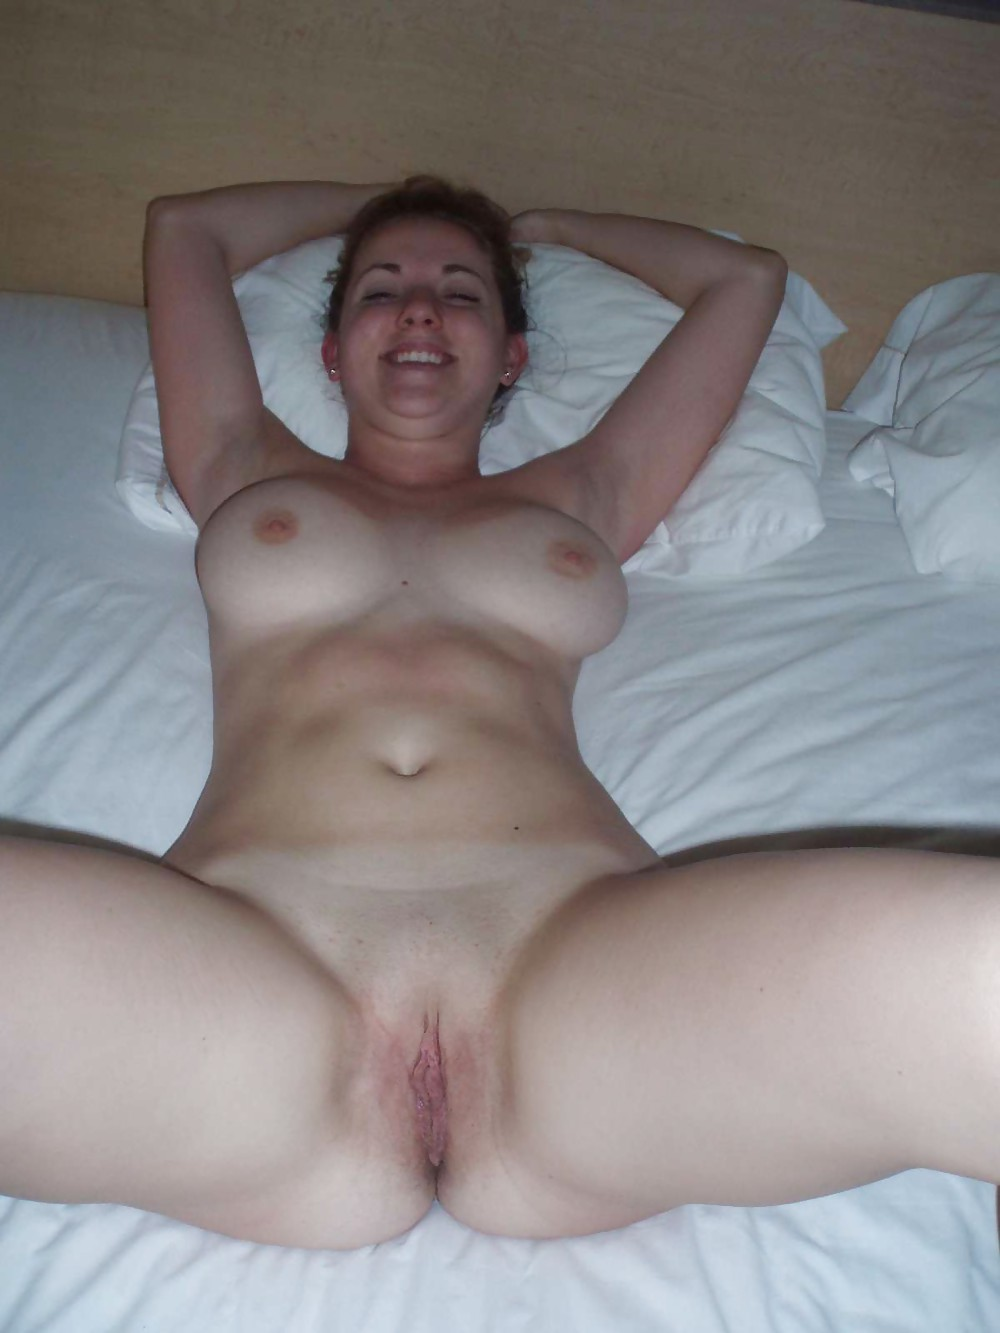 Ex wife nude vpussy, the sexiest couples with big boobs naked